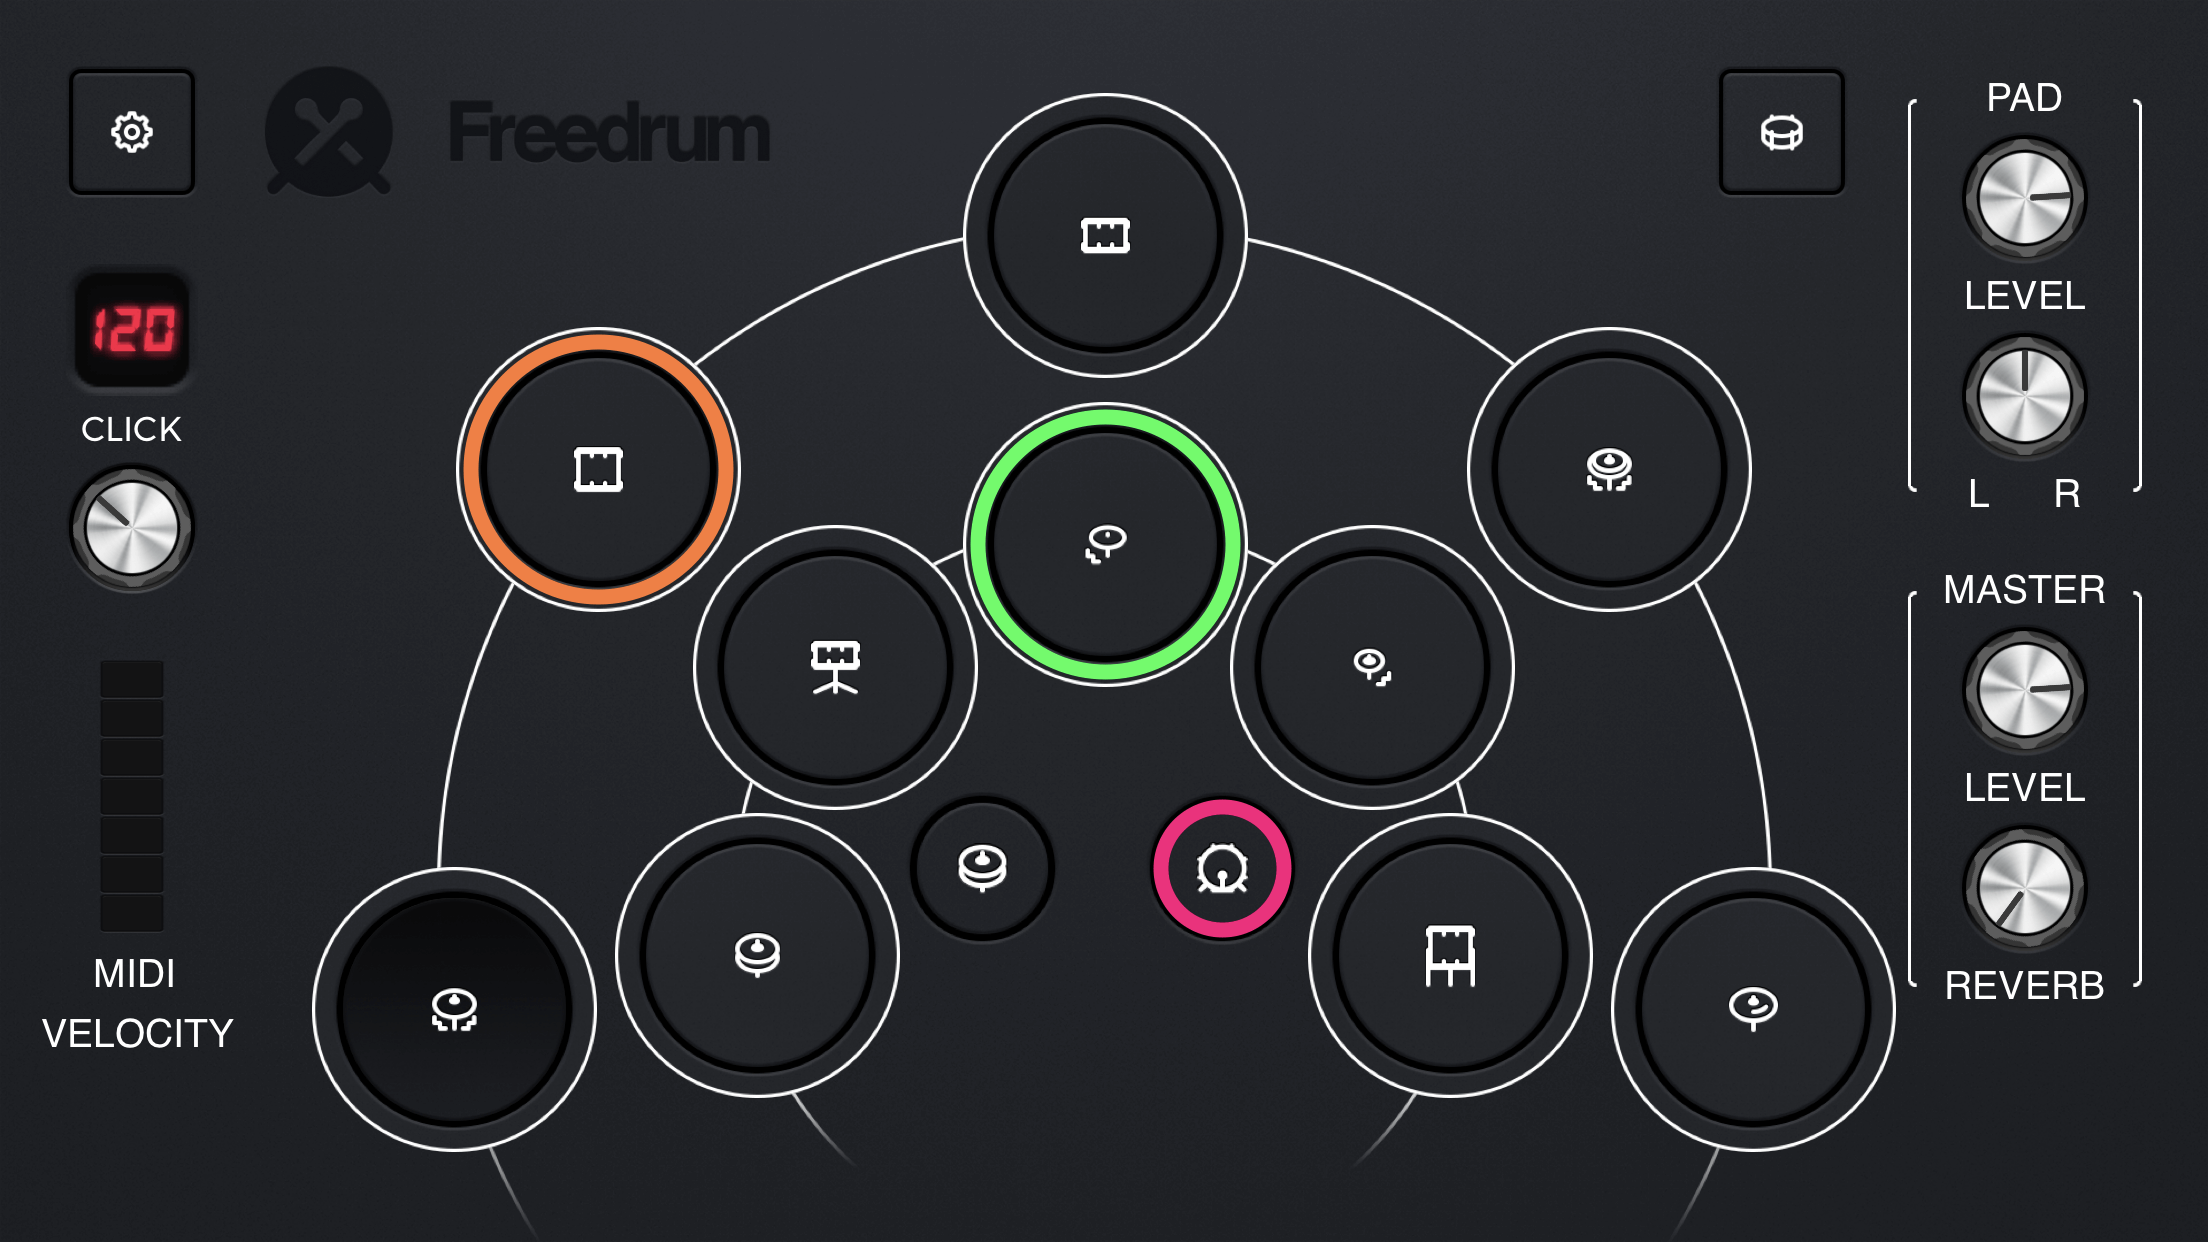 Freedrum updates its virtual drum kit app to v2 0 with new user